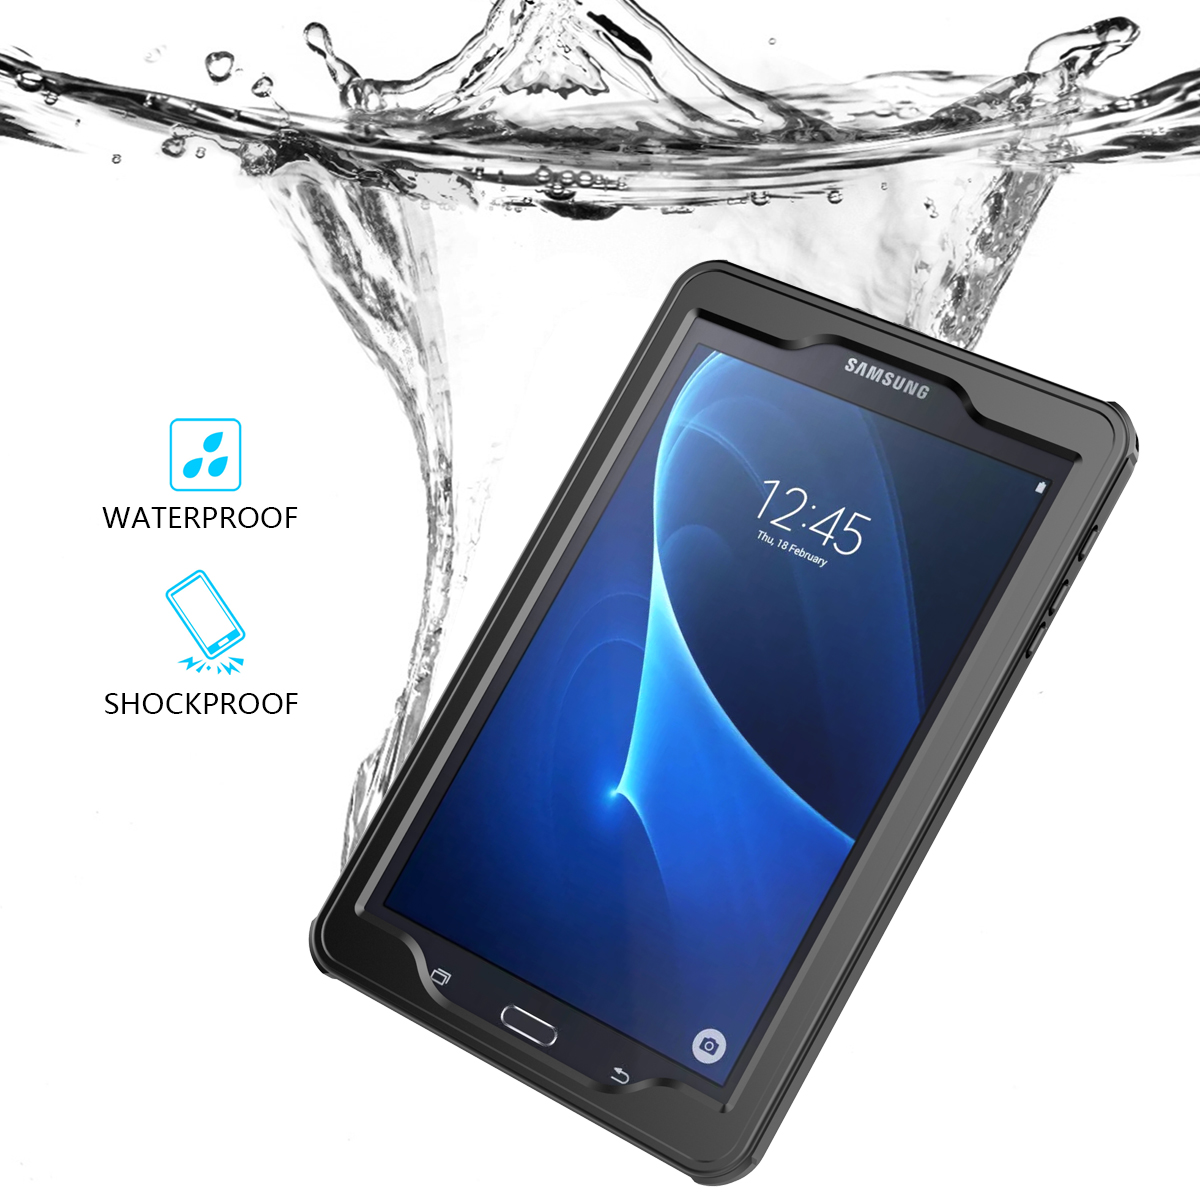 timeless design f56f8 15dc5 CASEWIN Tablets Cases For Samsung Galaxy Tab A6 10.1 Waterproof Tablet Case  Shockproof Dust Proof Protective Cover Cases